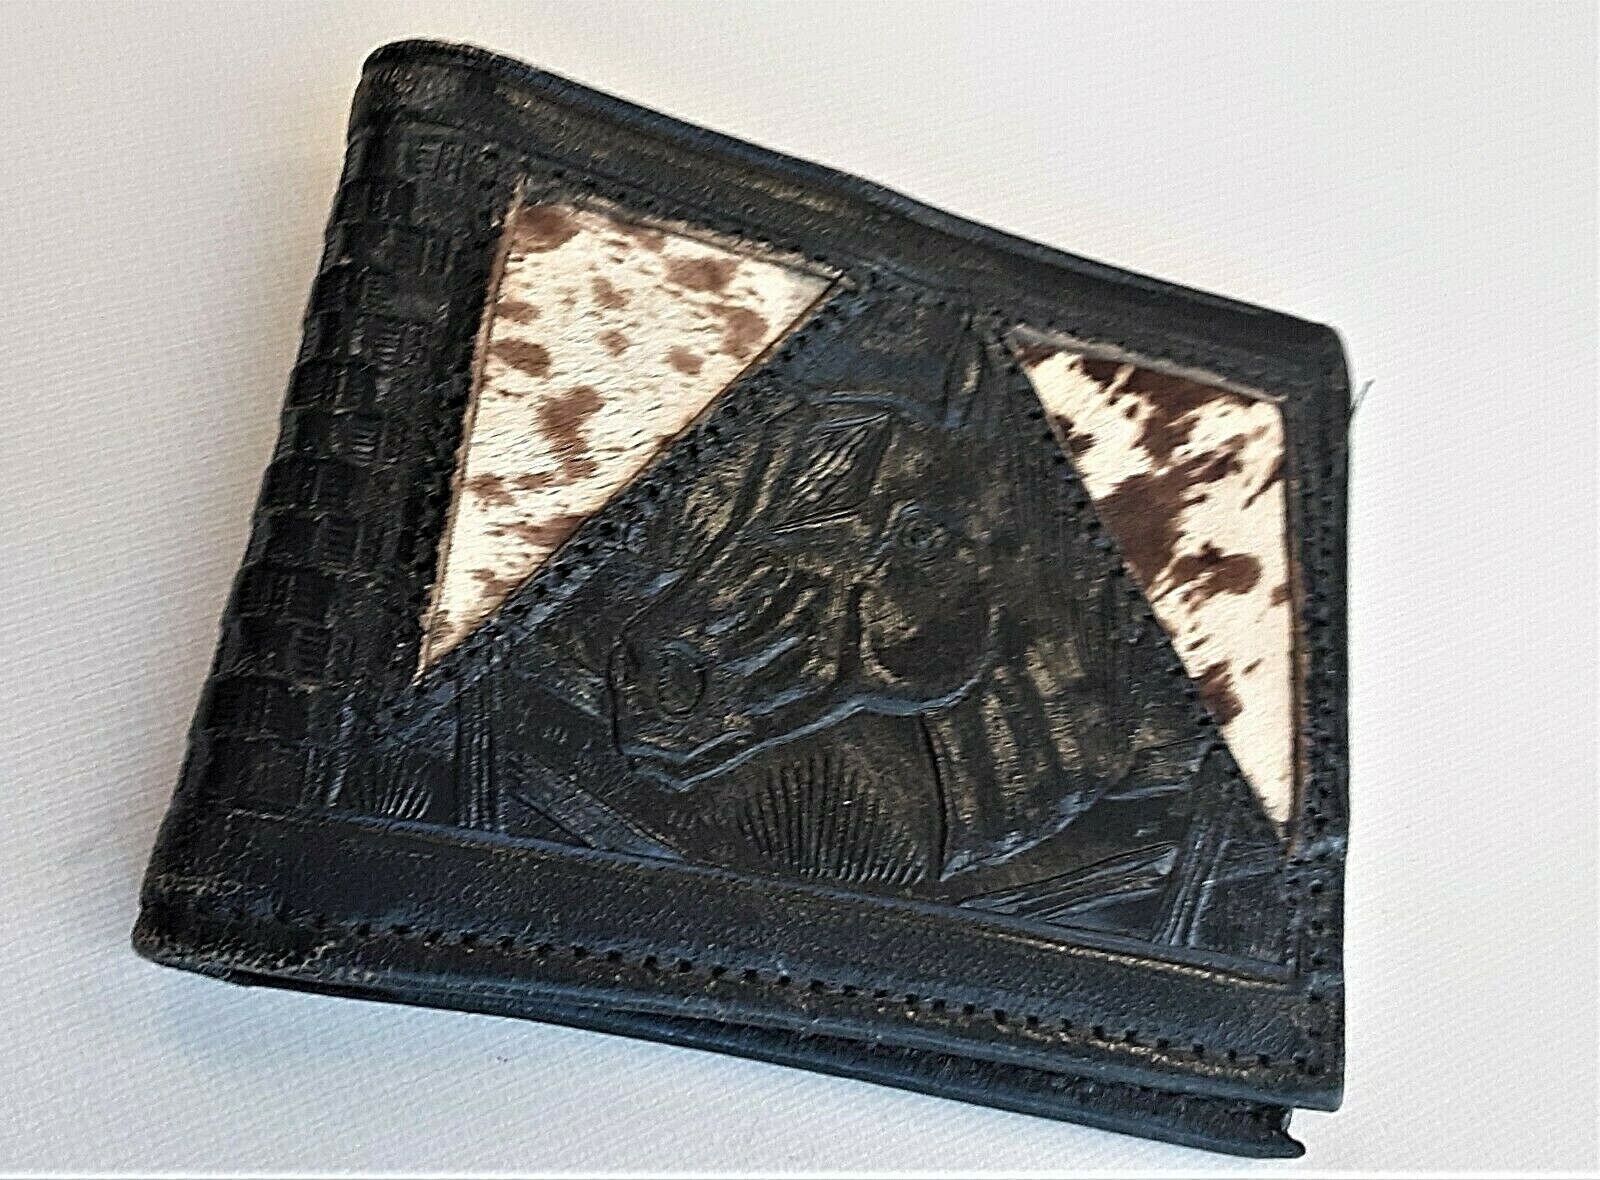 HANDCRAFTED LEATHER WALLET SOUTH WESTERN HAND TOOLED & PAINTED BILLFOLD